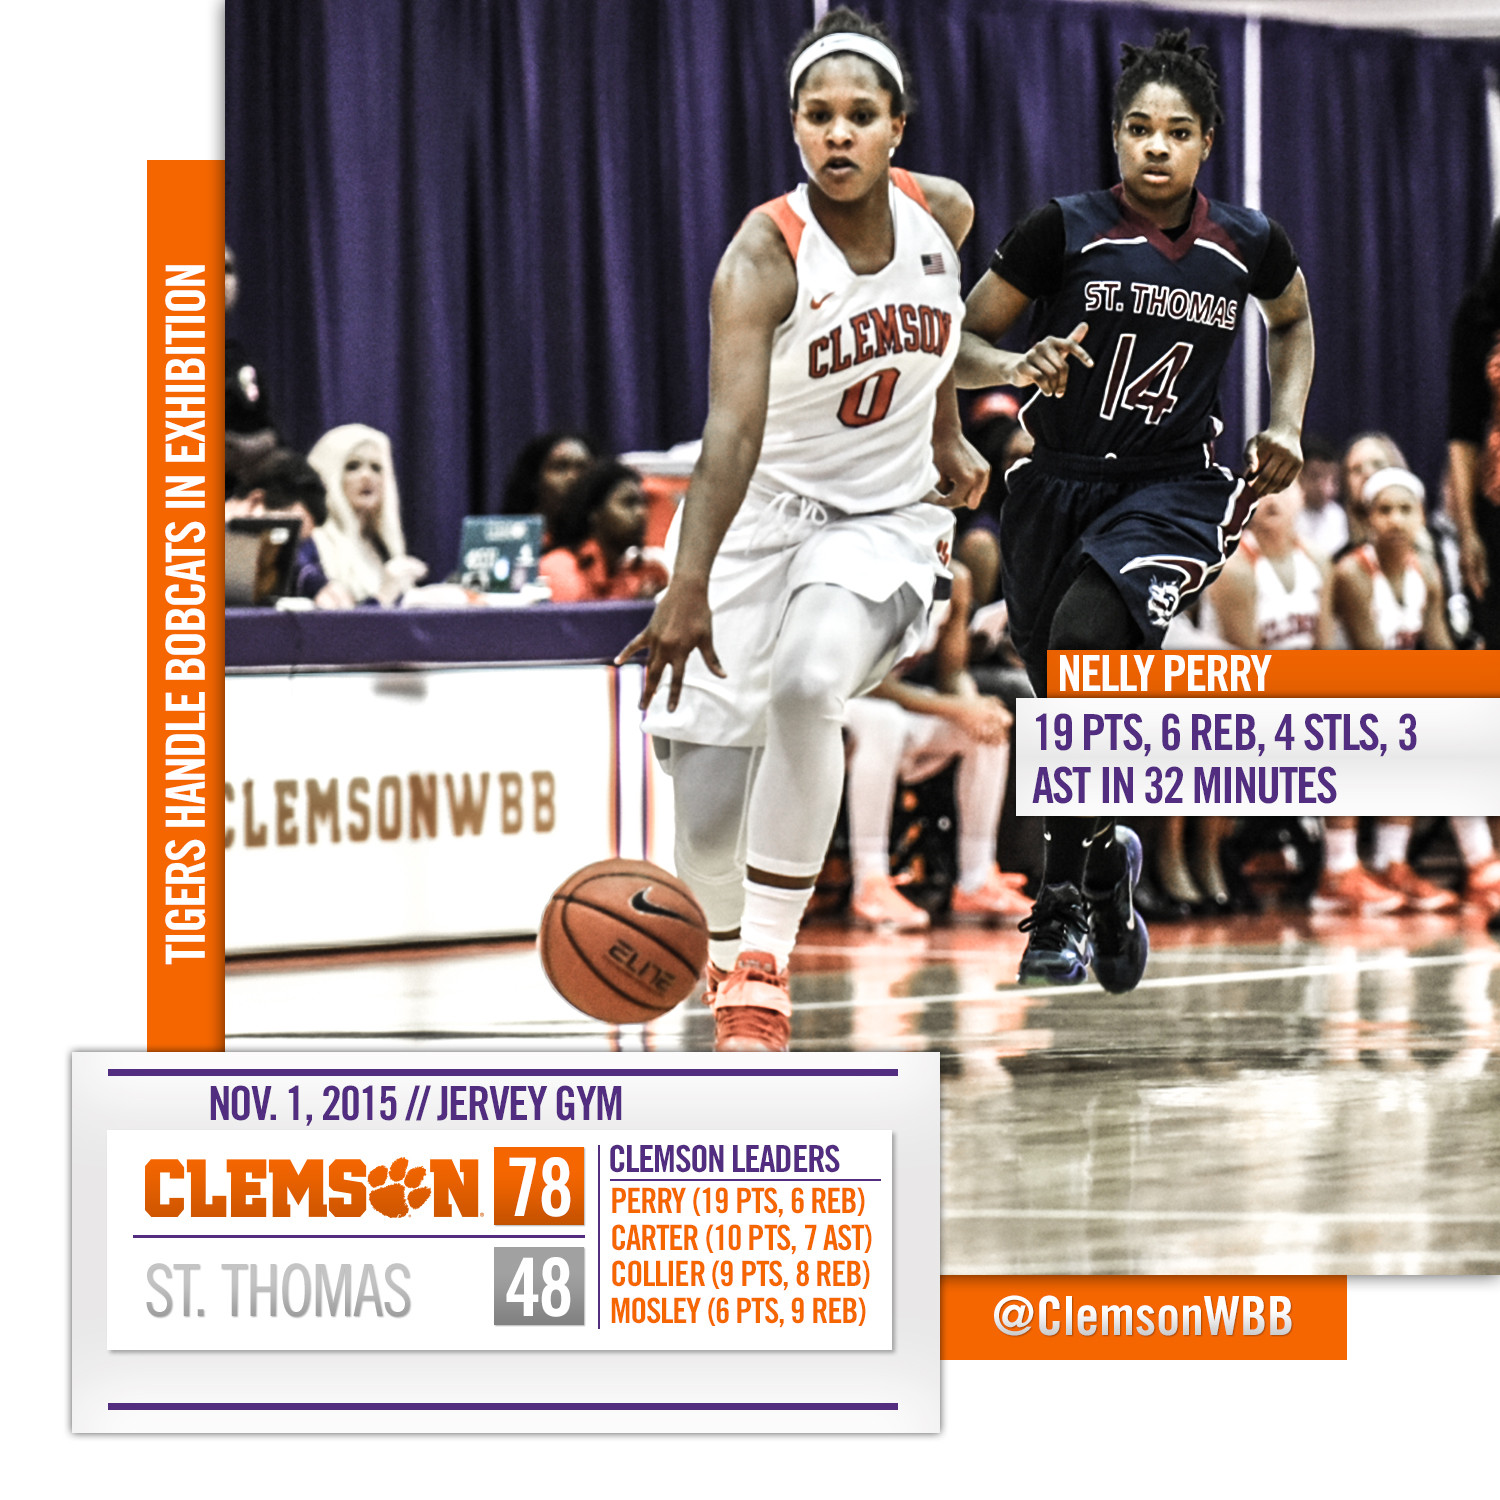 Clemson Handles St. Thomas in Exhibition